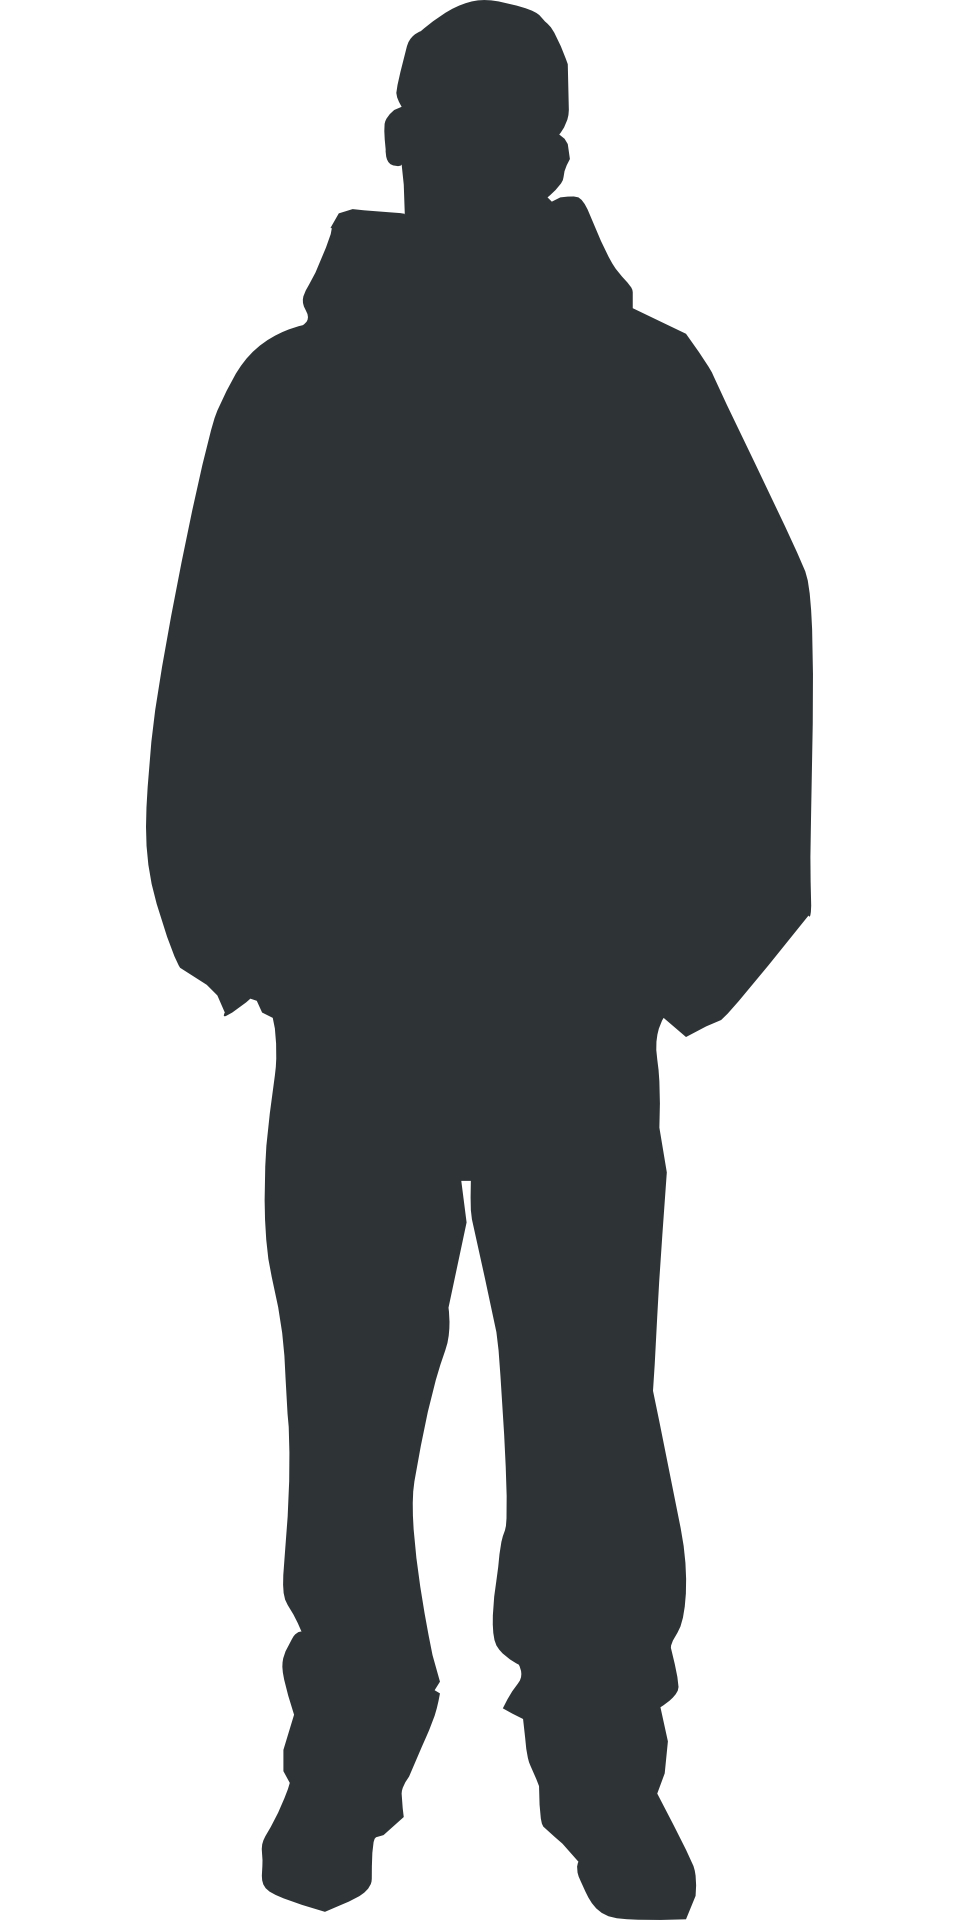 960x1920 Man Outline People Silhouette Vector Free Psd,vector,icons